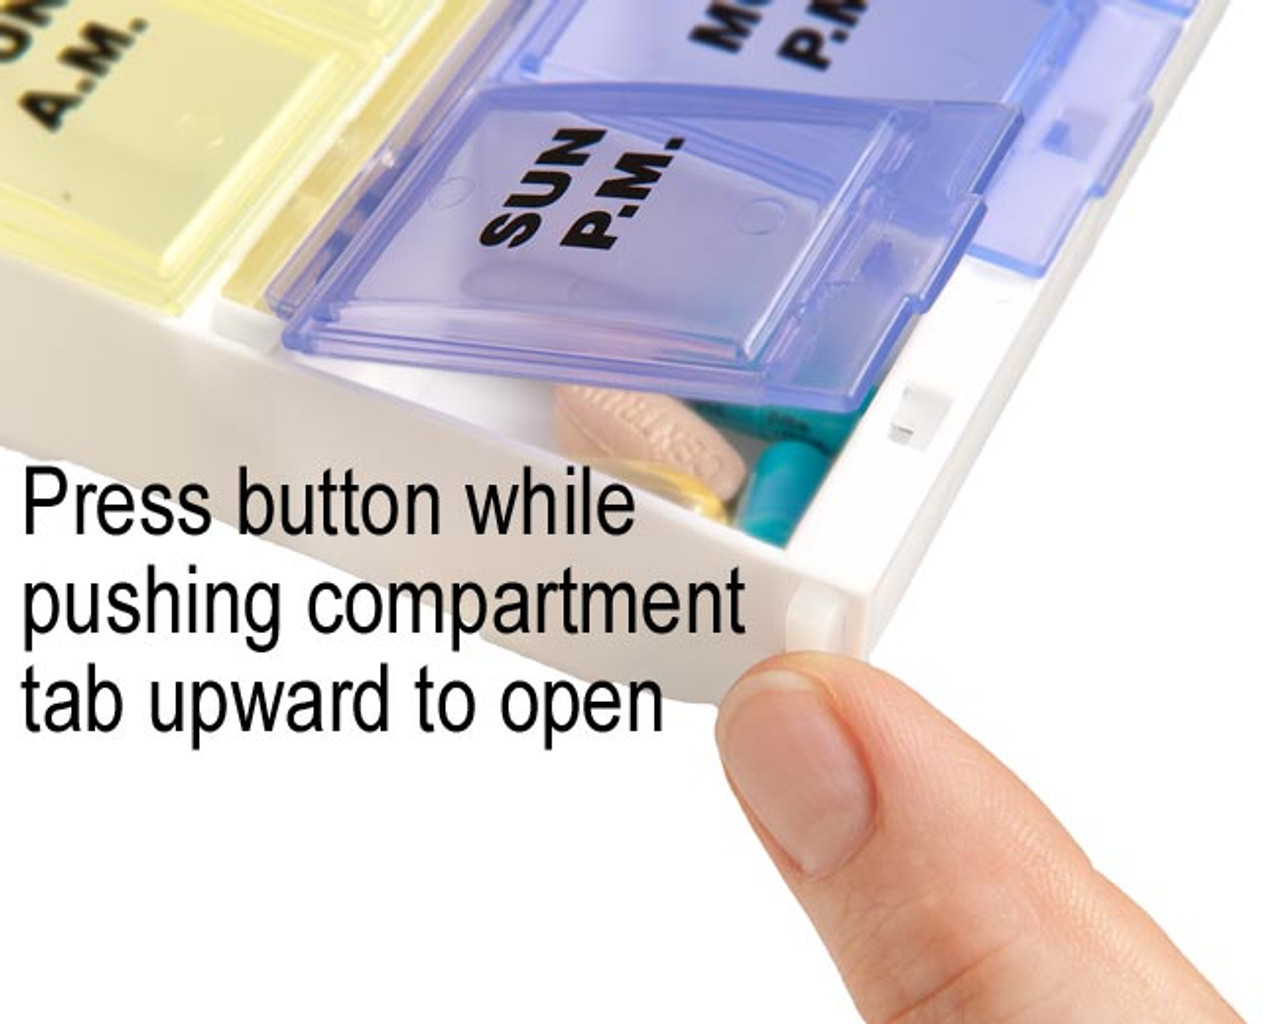 AM PM Twice a Day Pill Organizer with Adult Lock